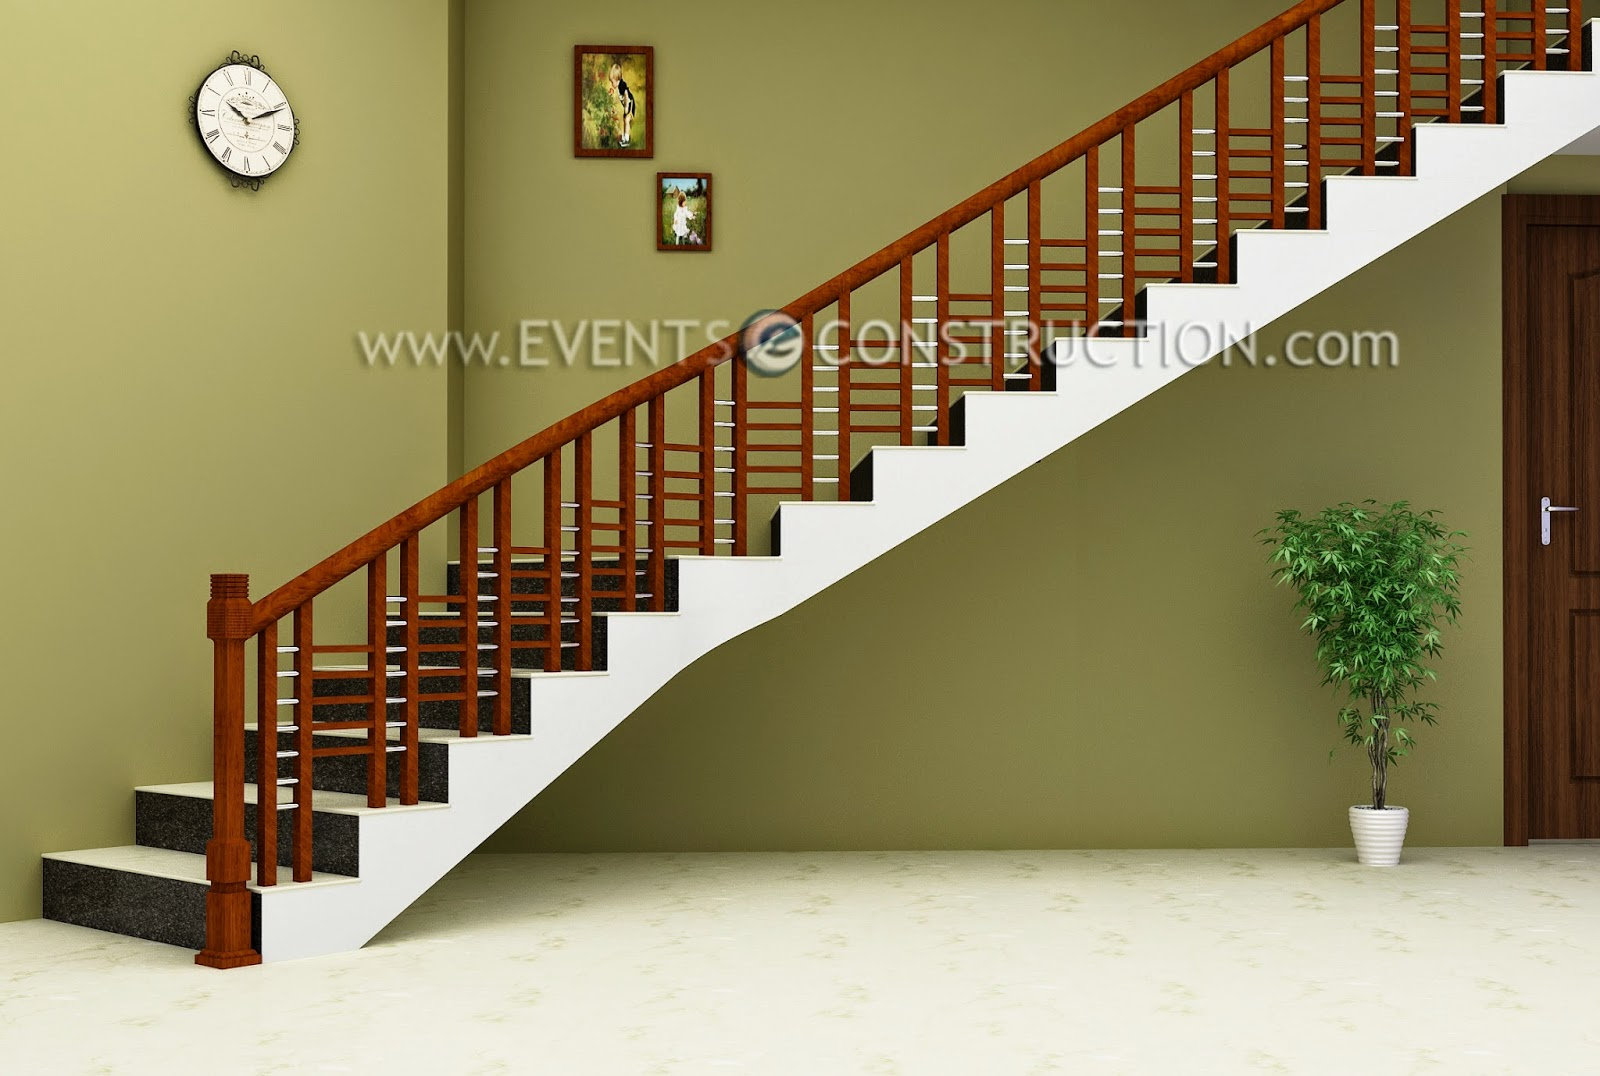 Simple Stairs Design Evens Construction Pvt Ltd Simple Wooden Staircase Design